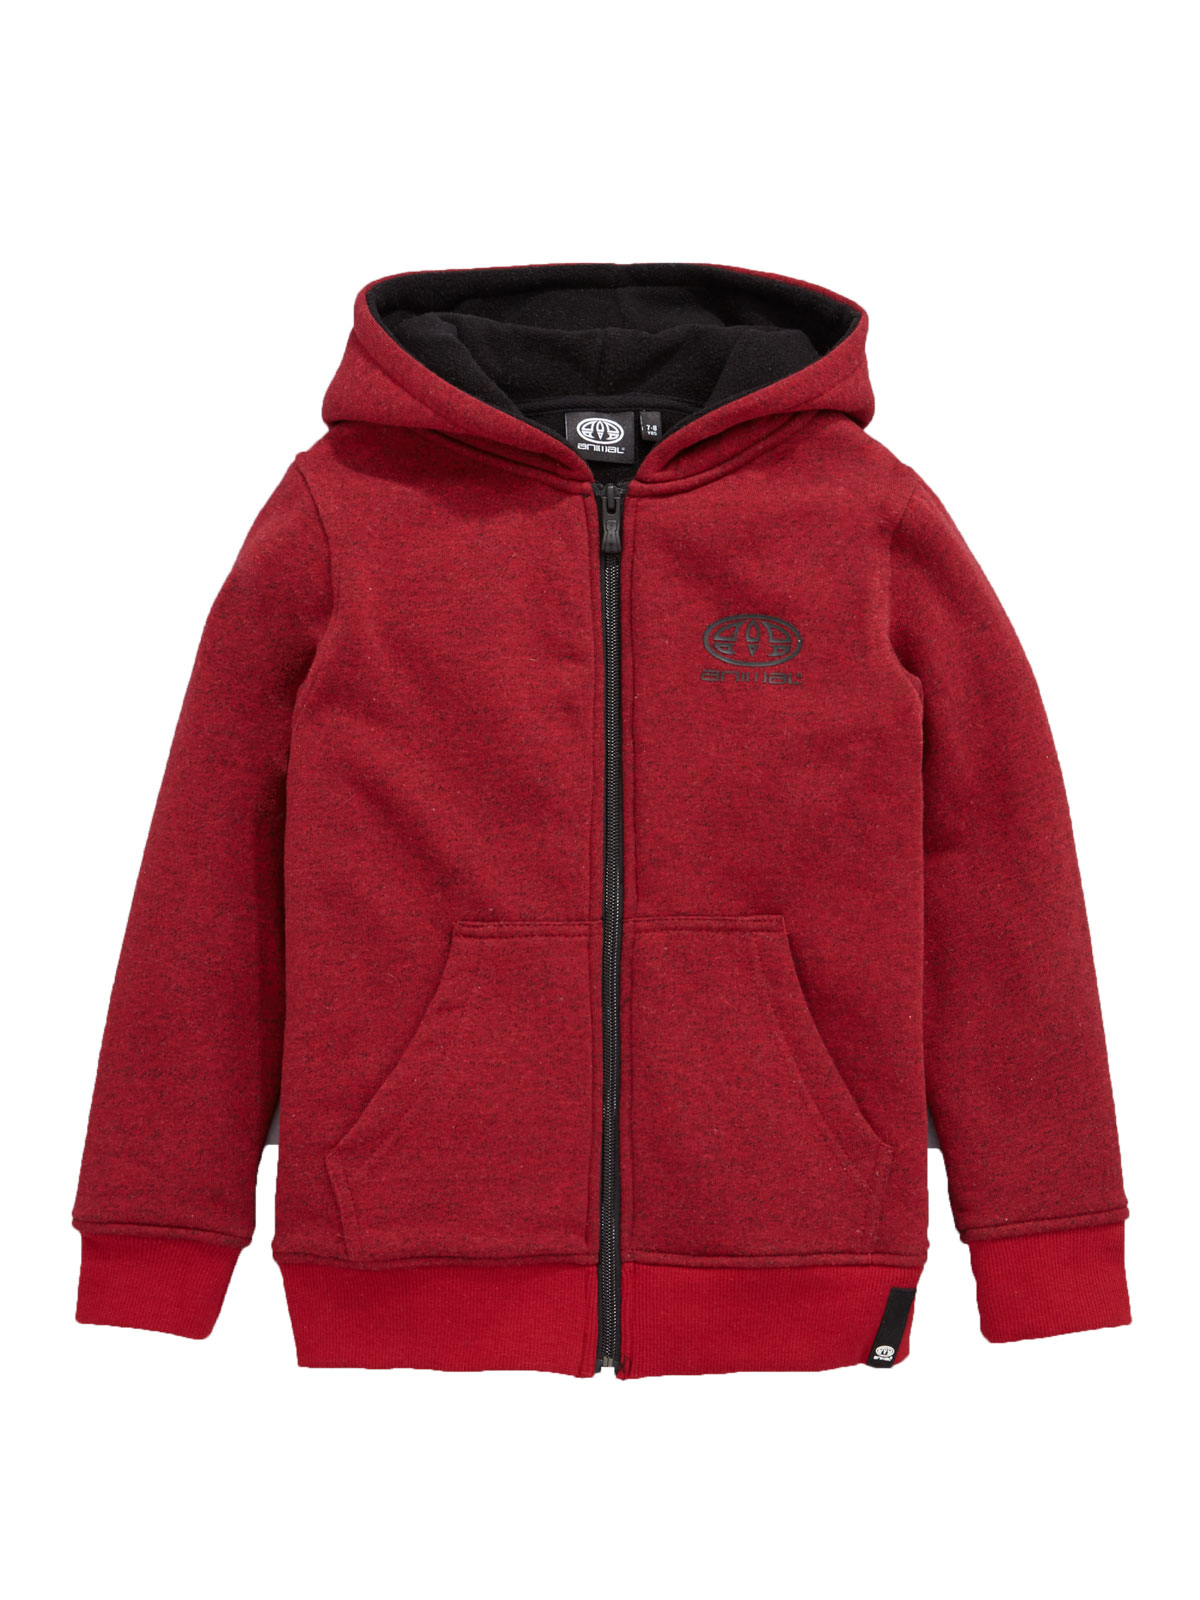 Animal Bonded Fleece Hoody.